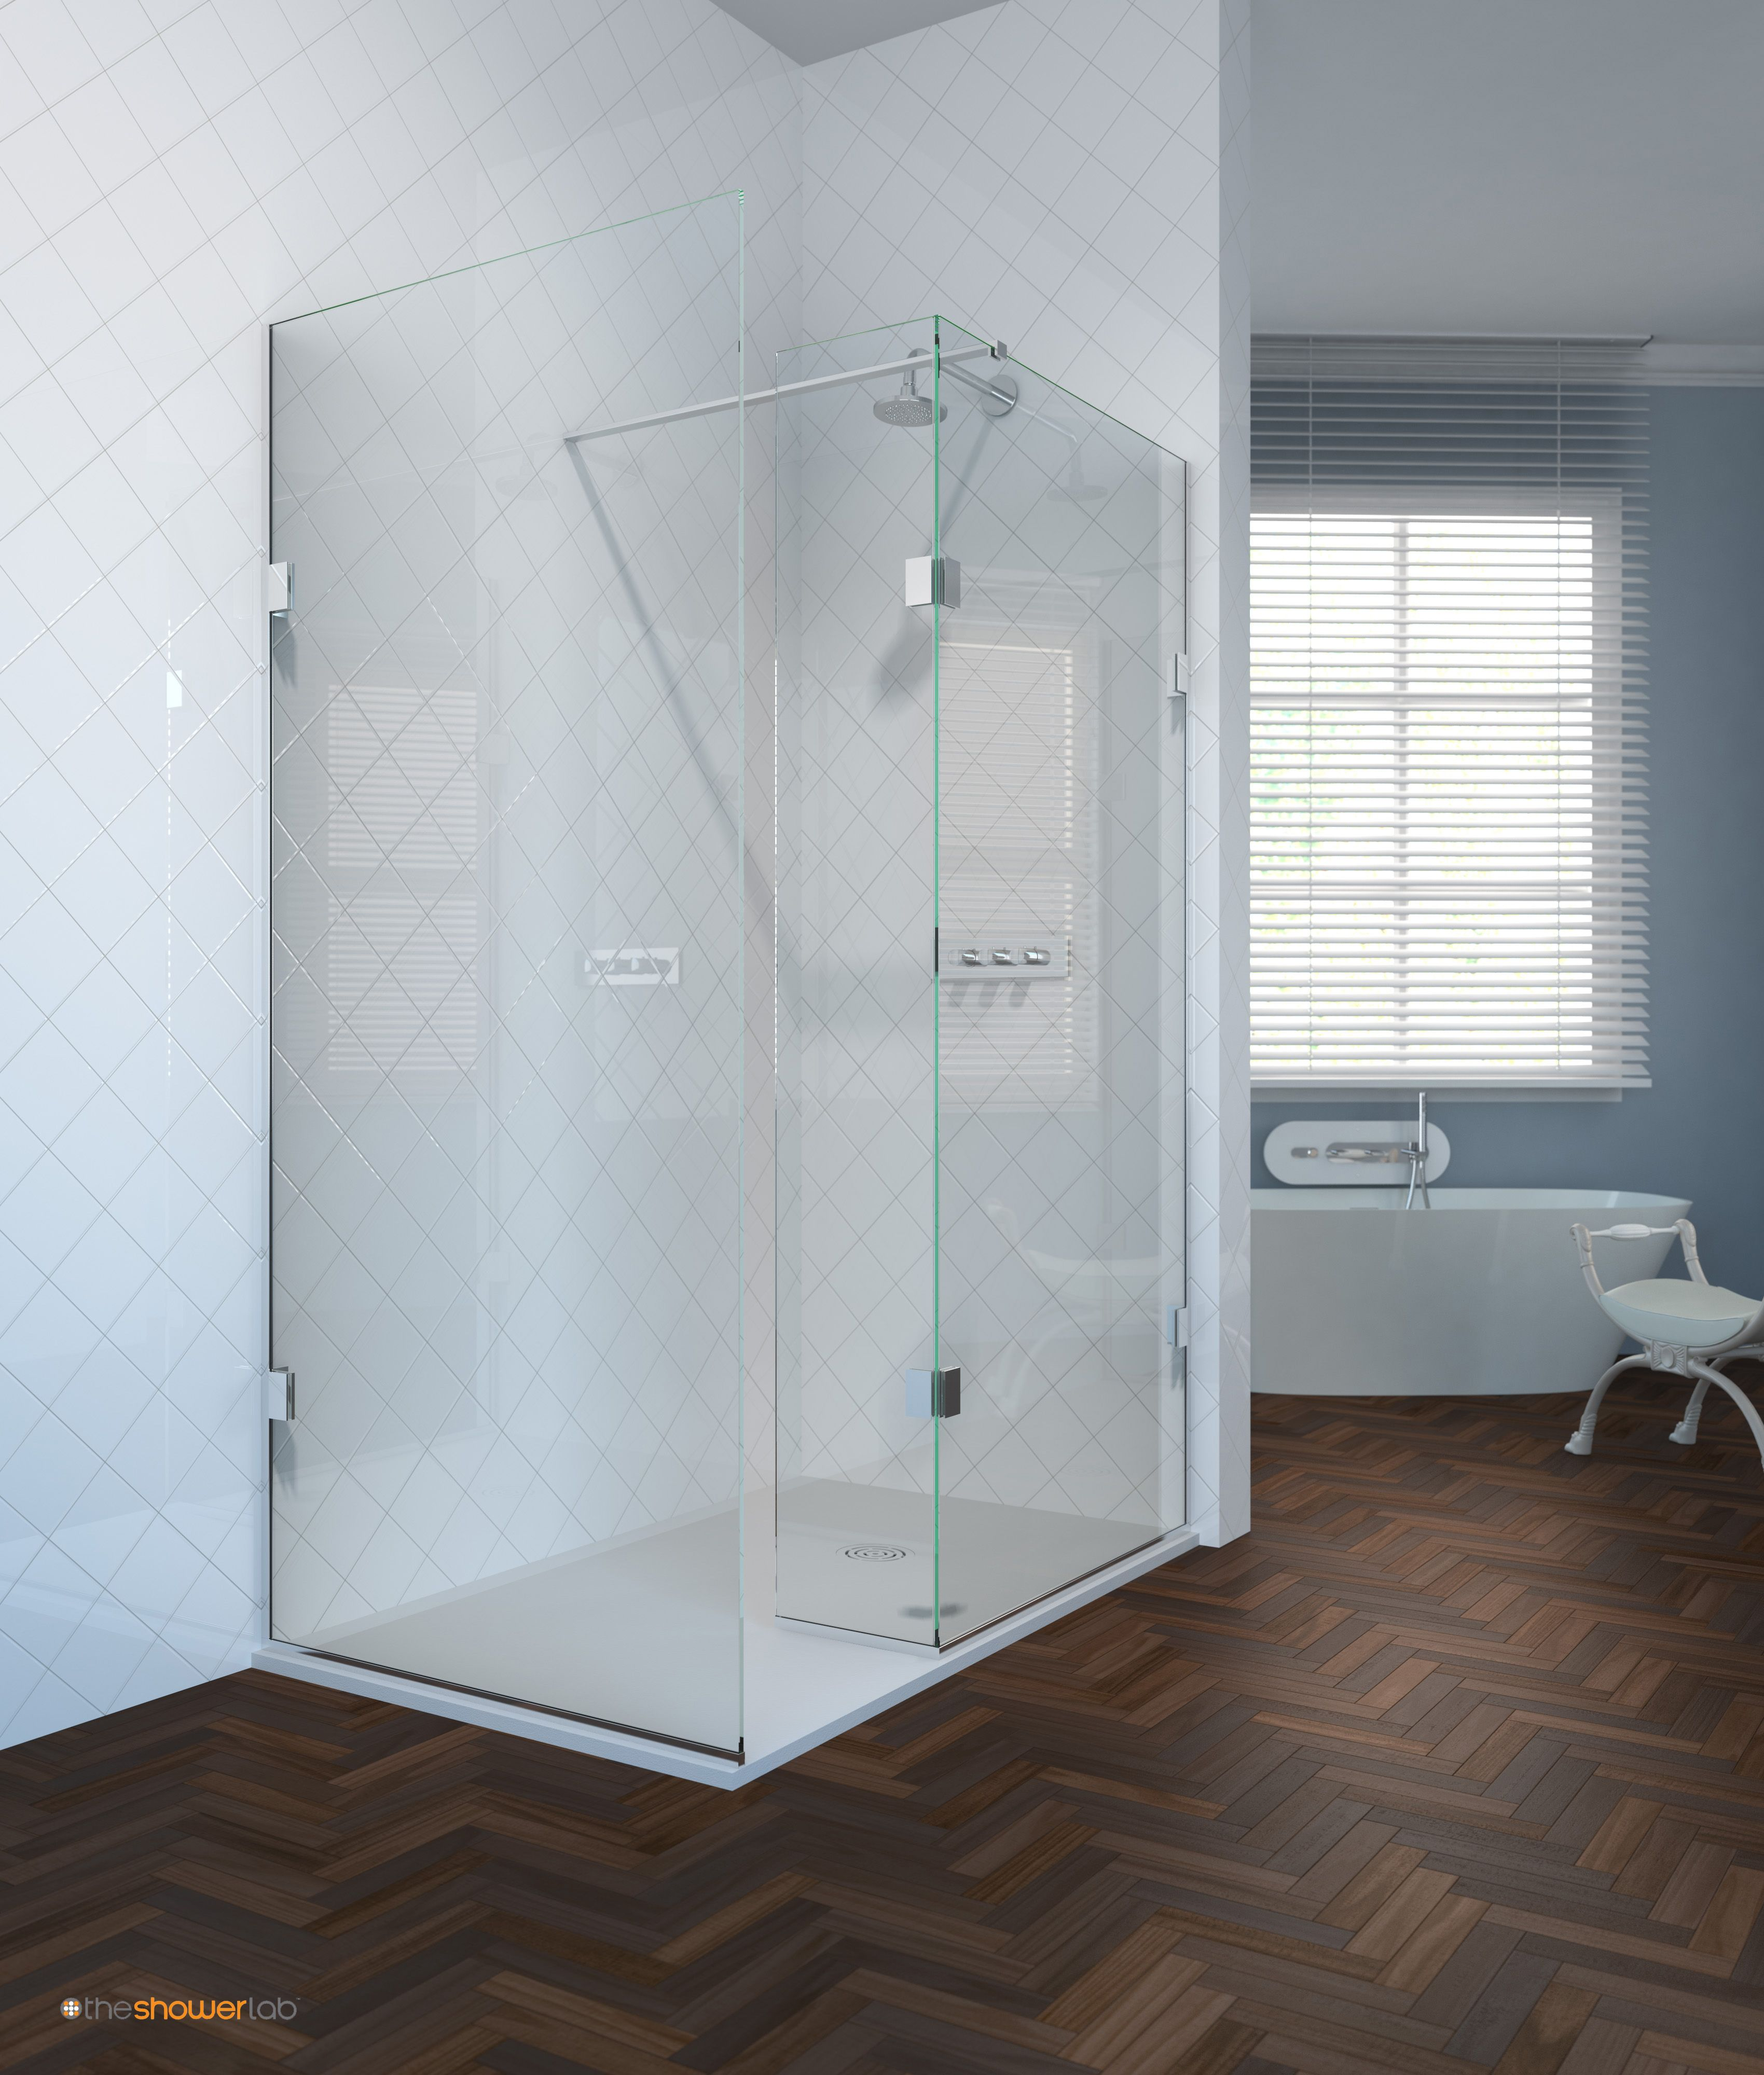 Made By The Shower Lab The Curium Is A Freestanding Frameless